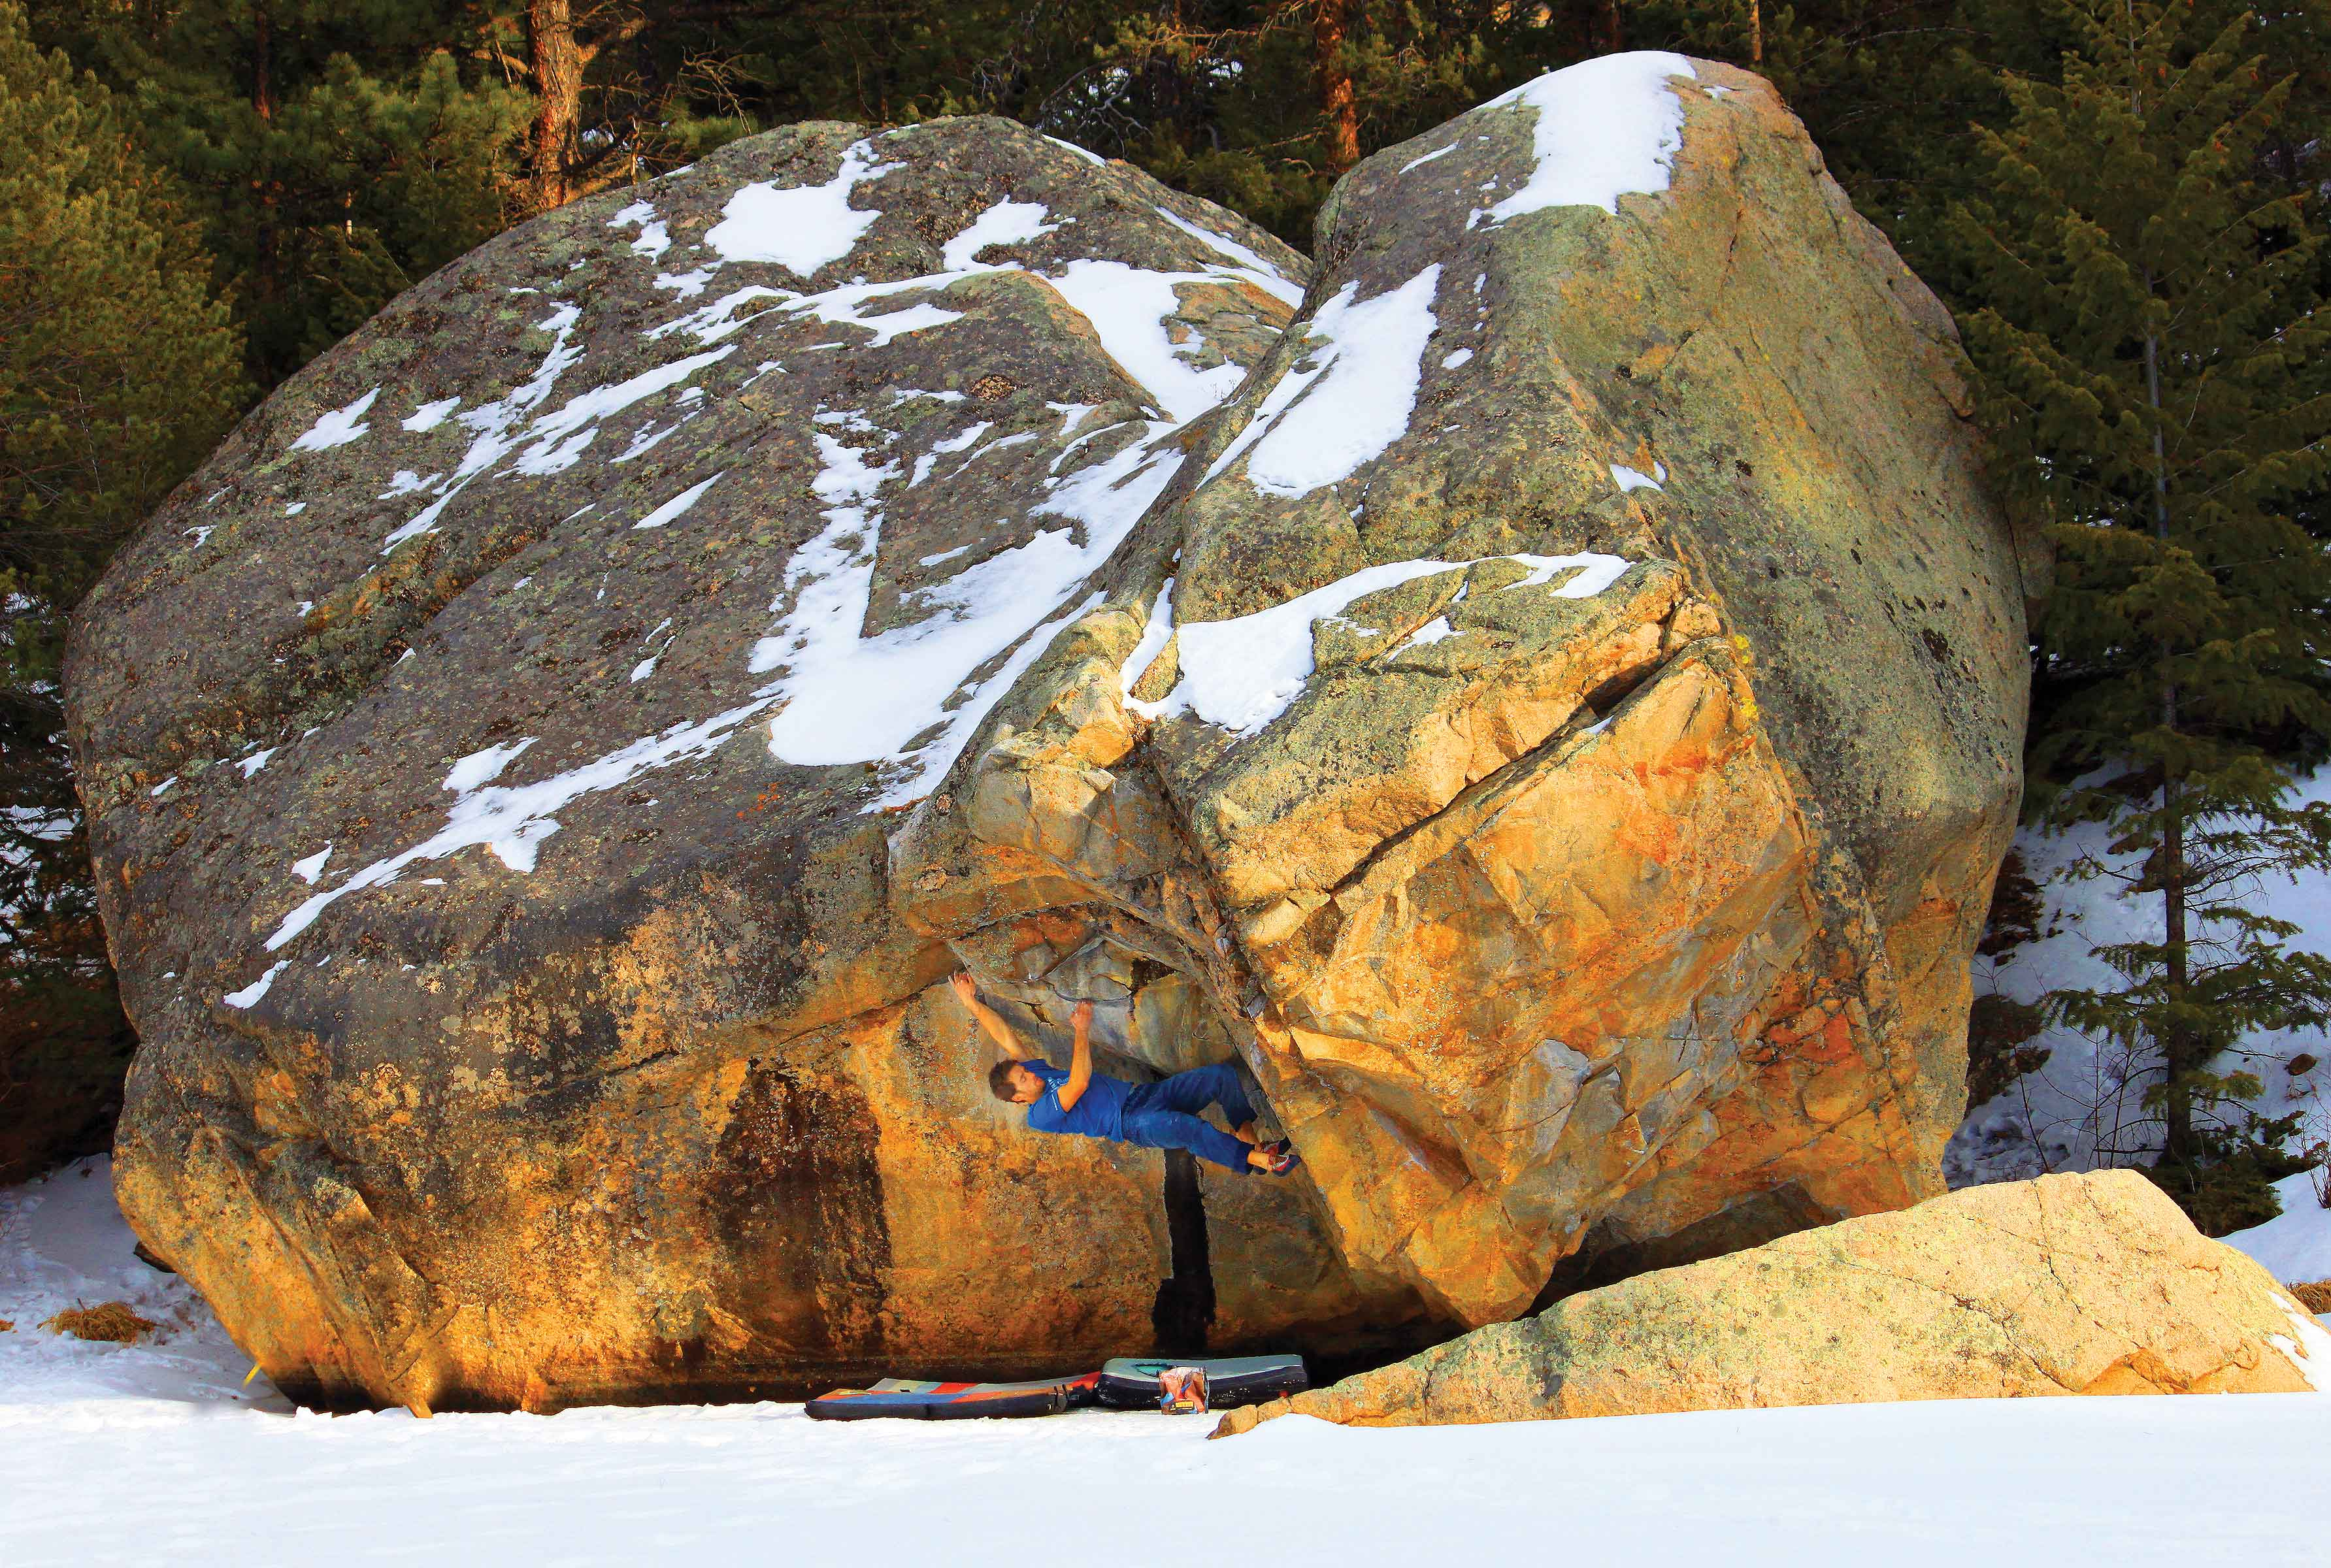 Colin Chorvat getting spun around on the impeccable Iron Helix (V6) at The Bog. Photo: Paul Dusatko.